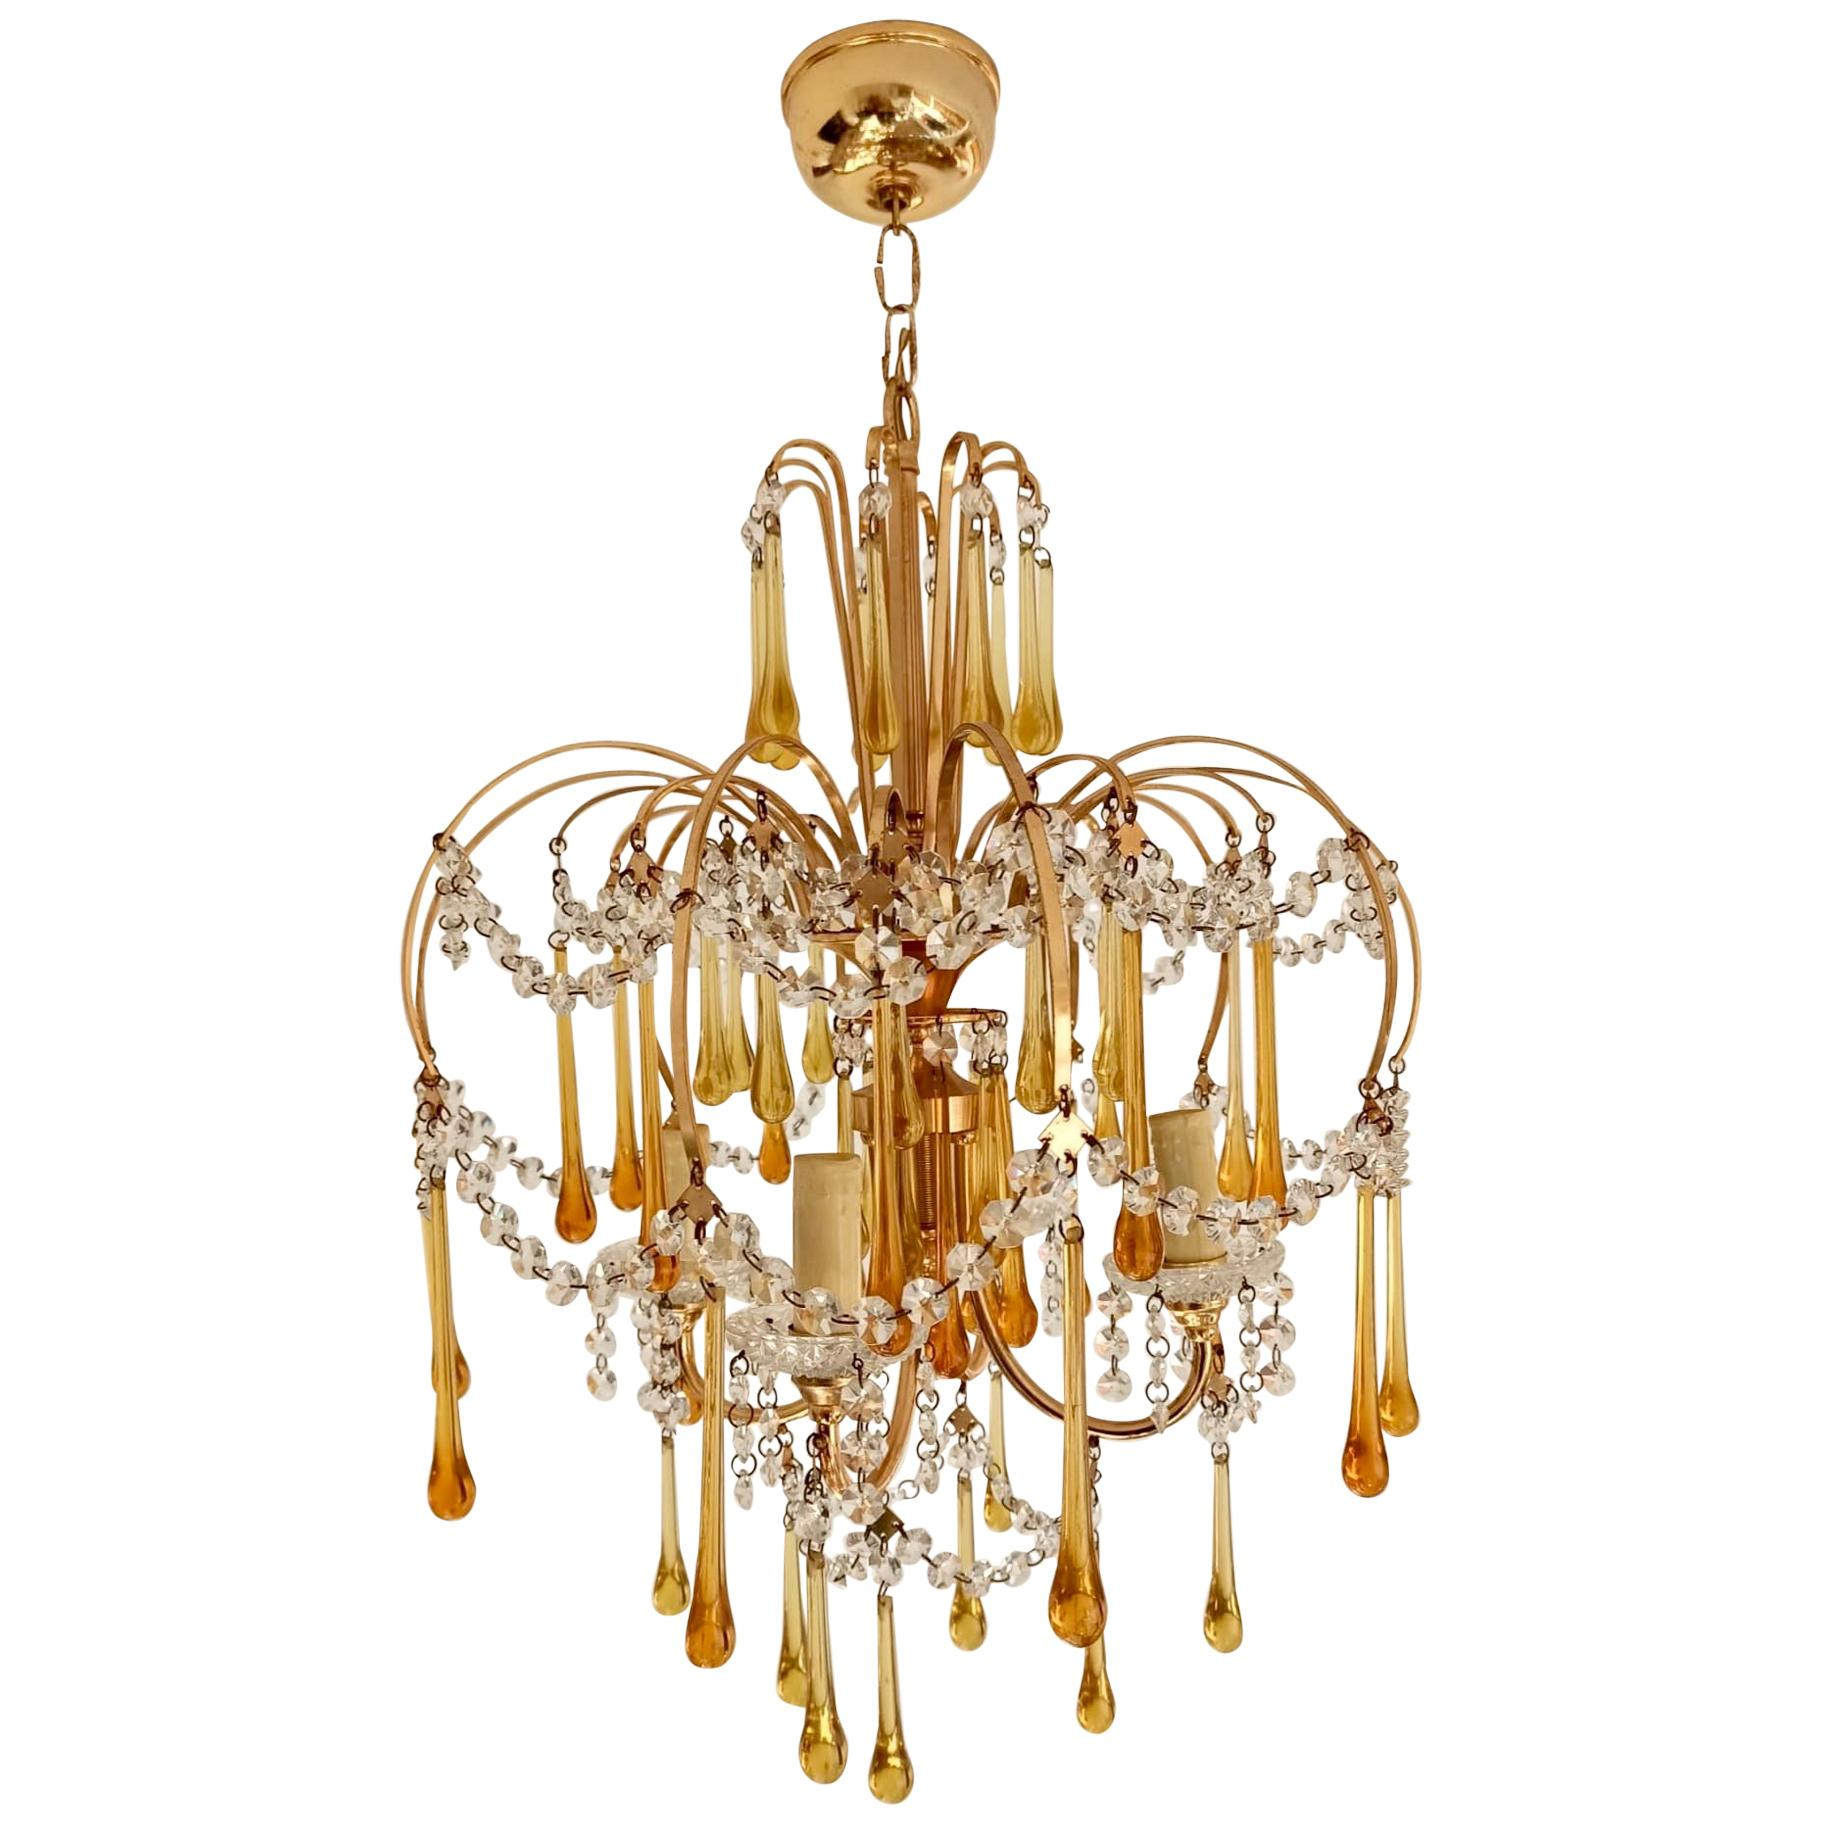 Italian Brass and Murano Amber Glass Tear Drop Chandelier by Paolo Venini, 1960